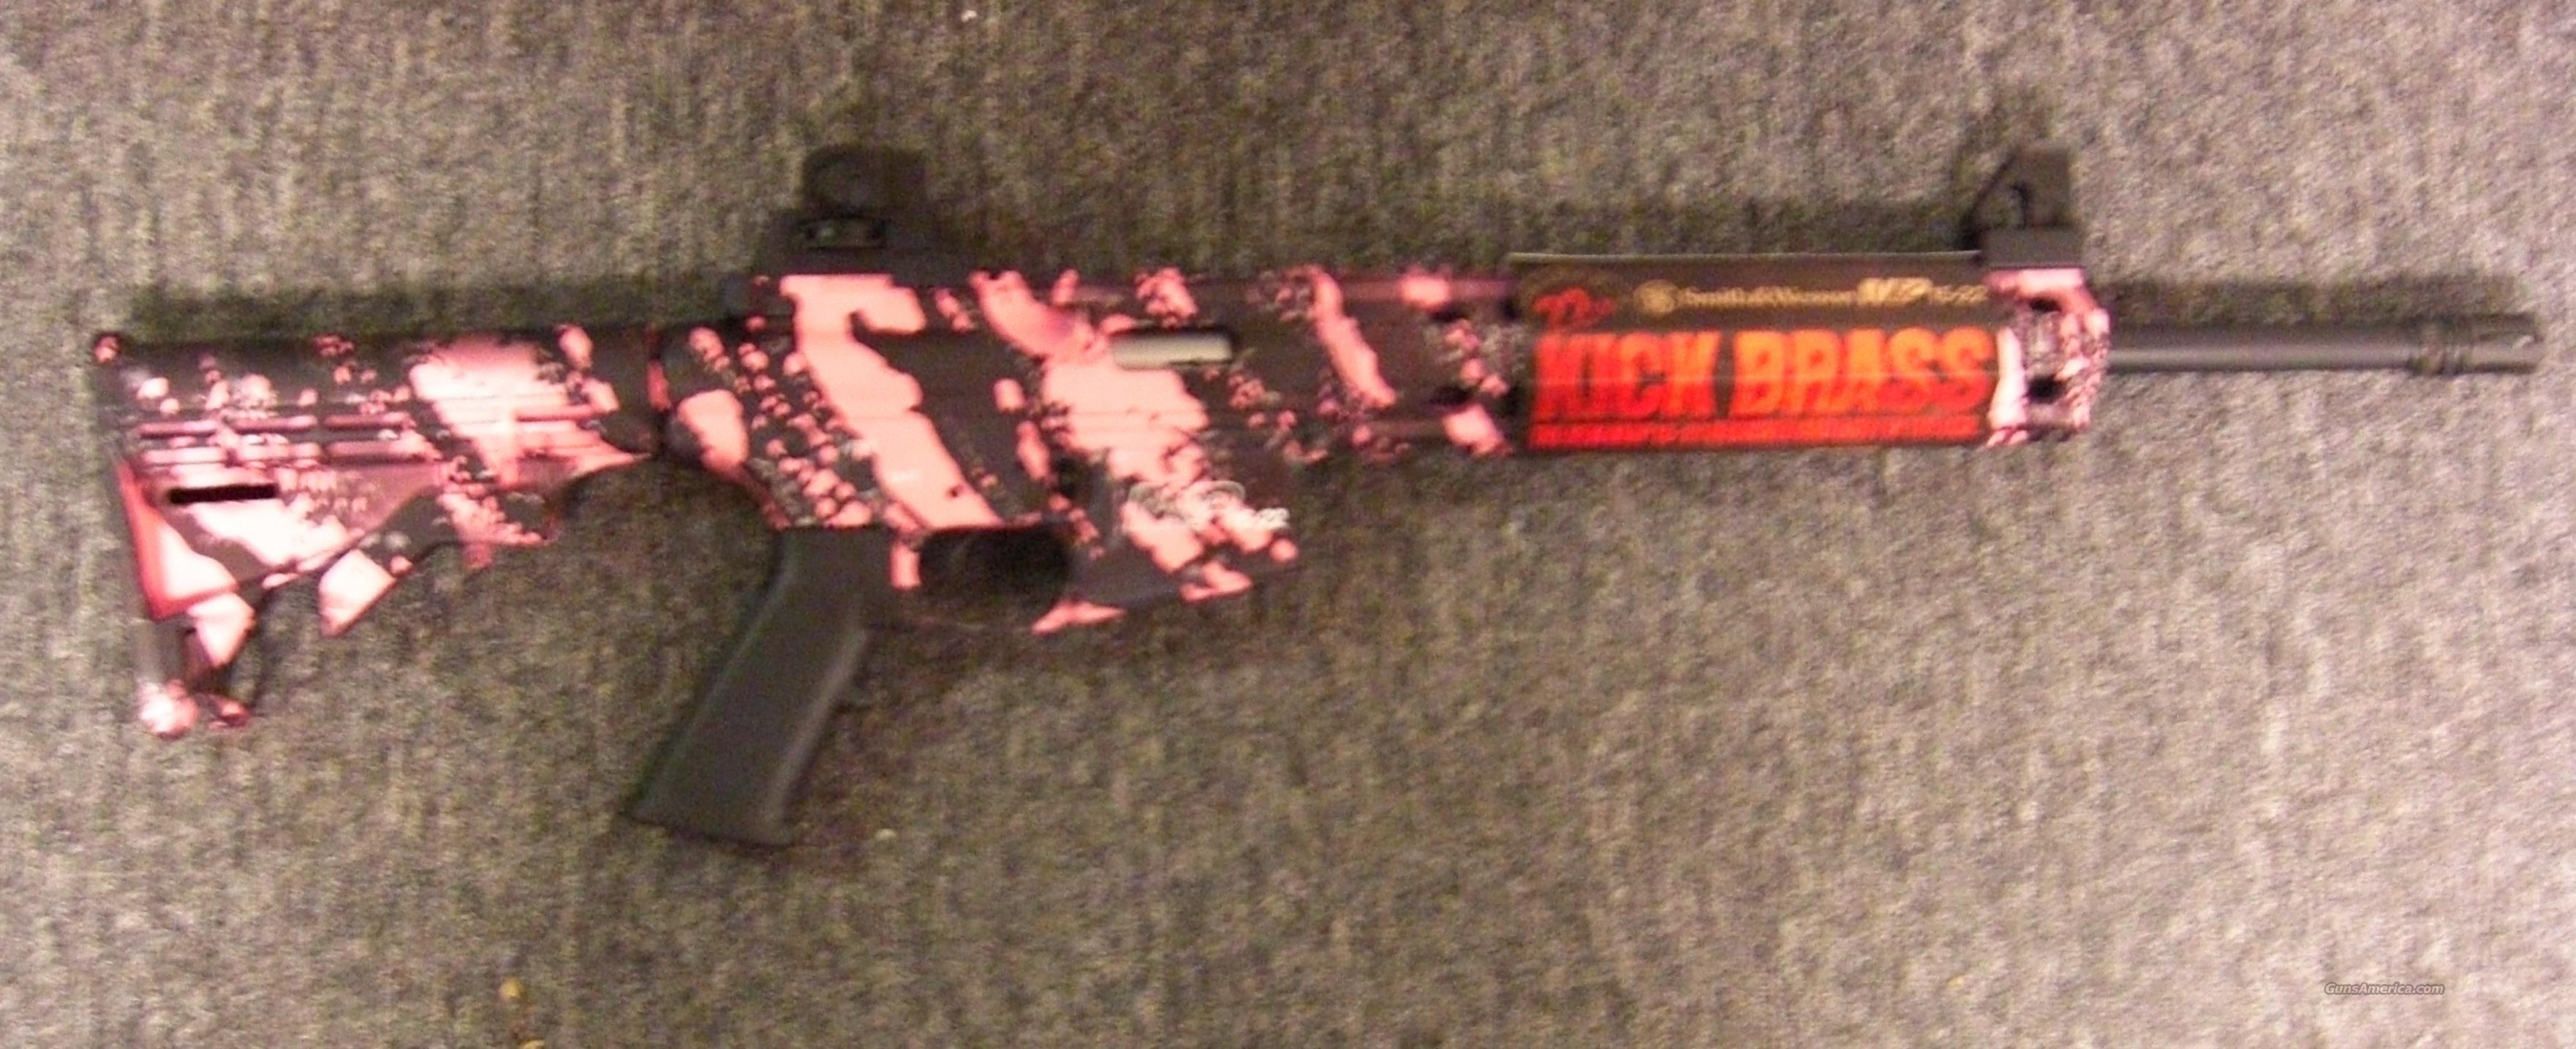 M & P 15-22  pink camo w/flash hider  Guns > Rifles > Smith & Wesson Rifles > M&P